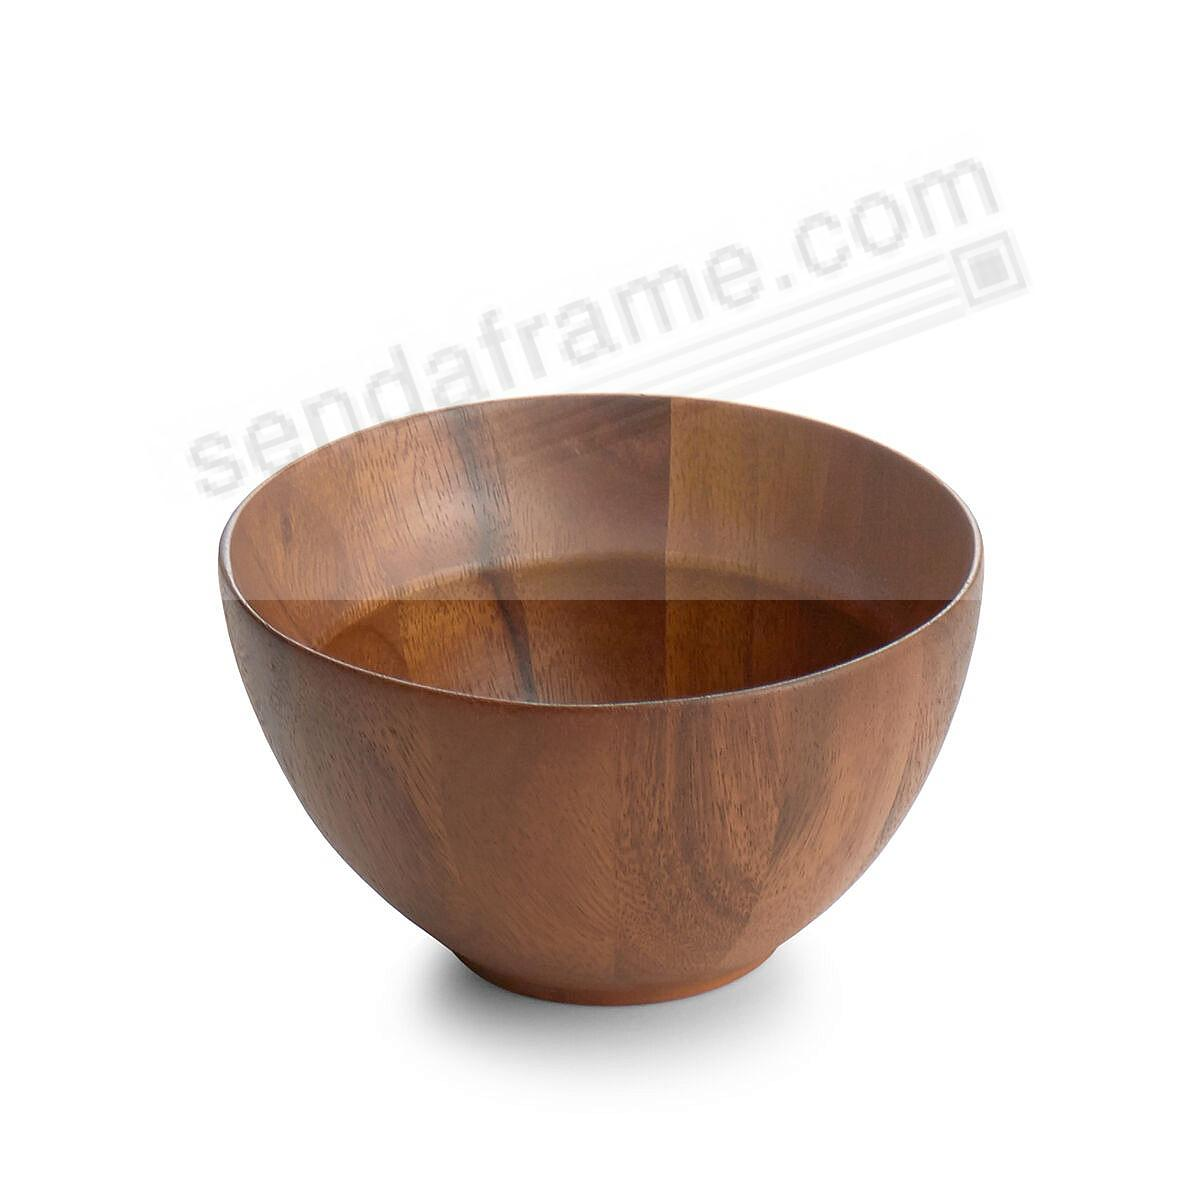 The SKYE ALL-PURPOSE BOWL crafted by Nambe®